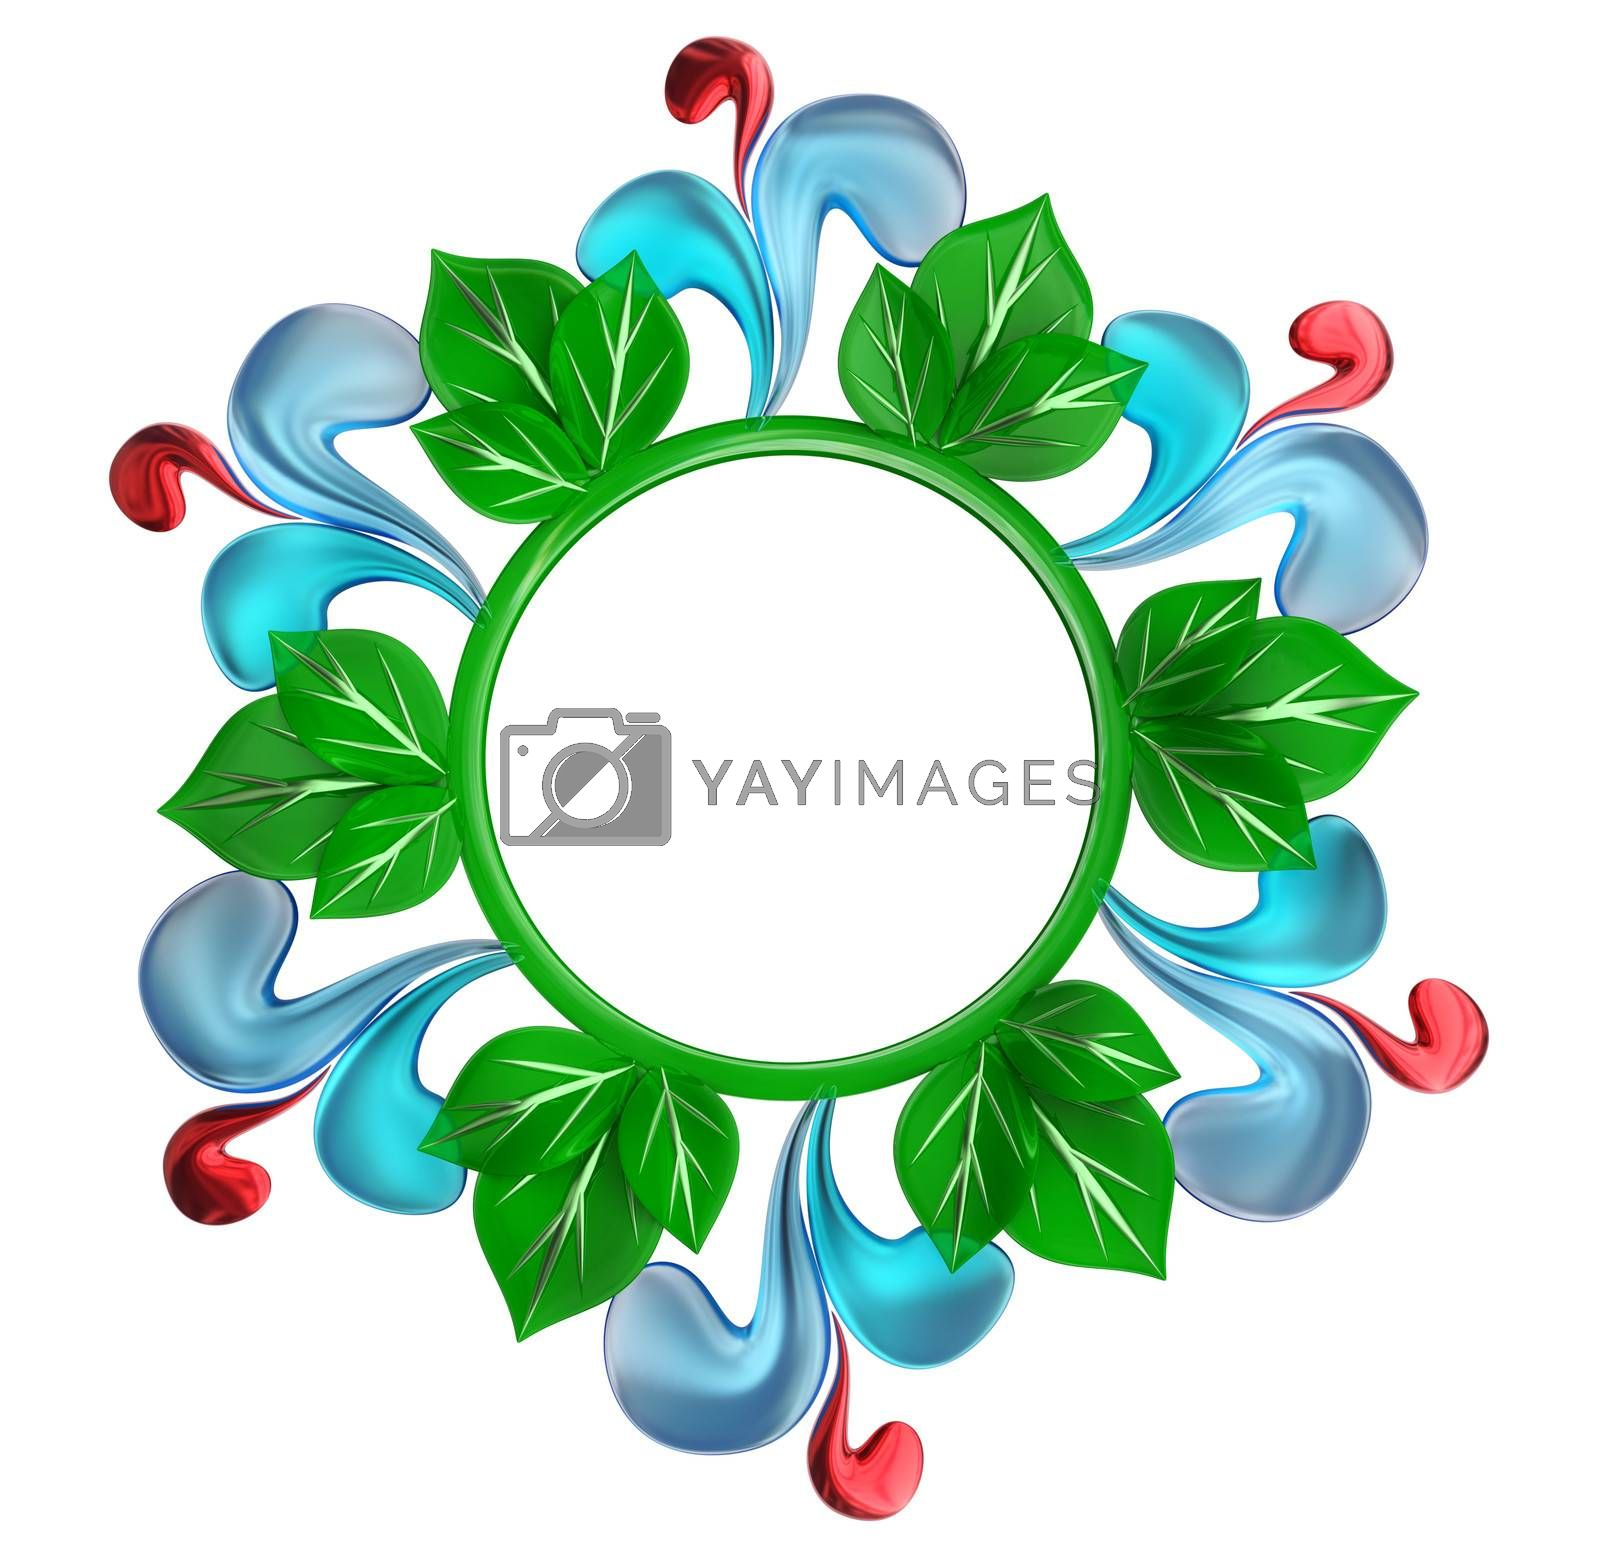 Green and blue round form with water drops and leafs